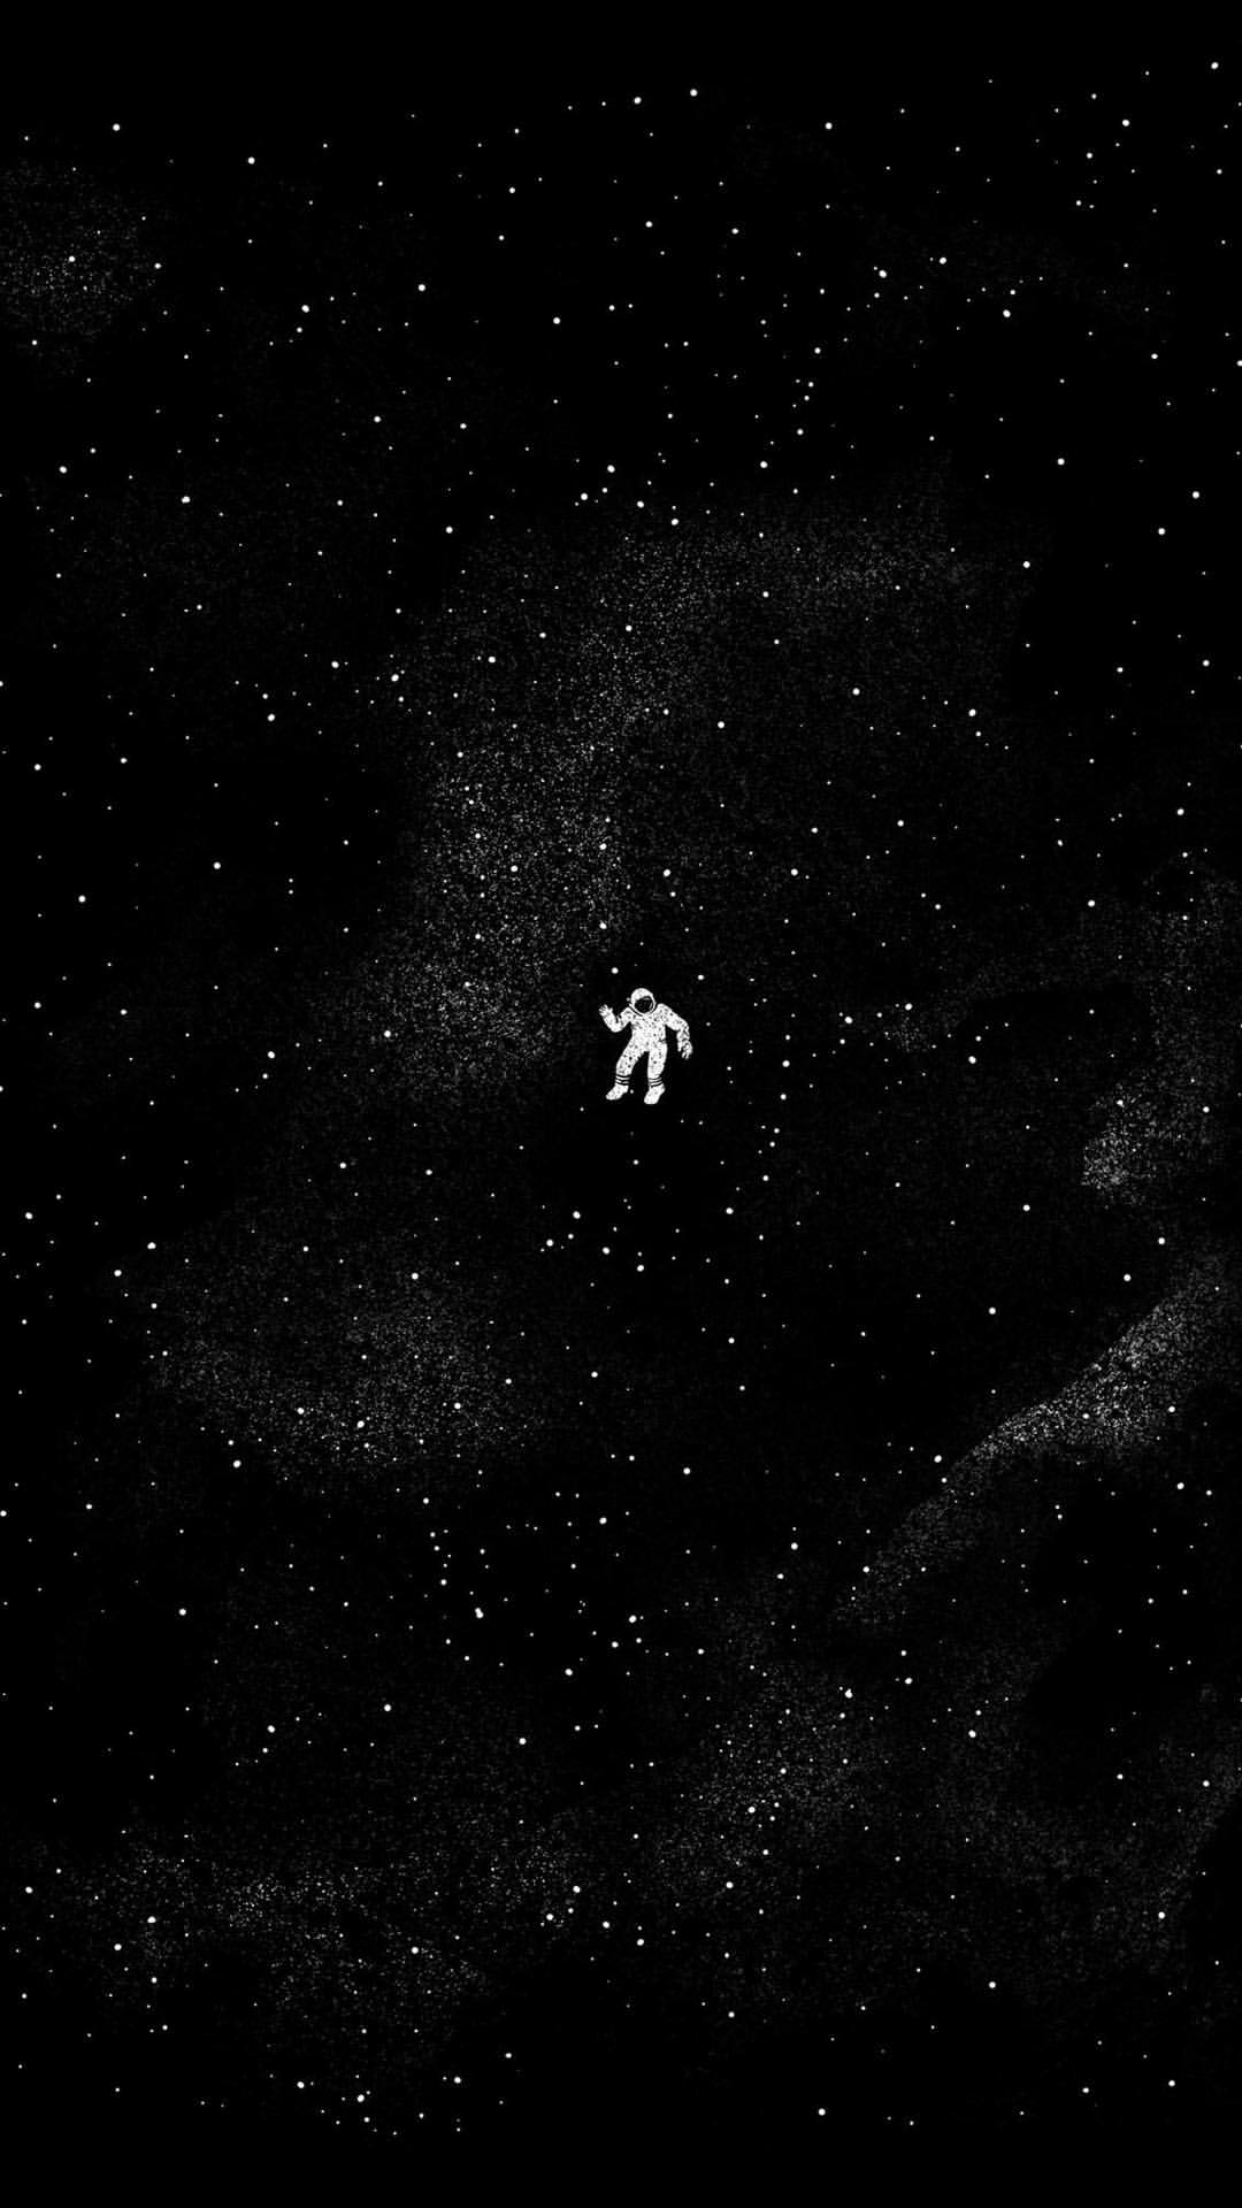 into the immensity of my infinite... i float